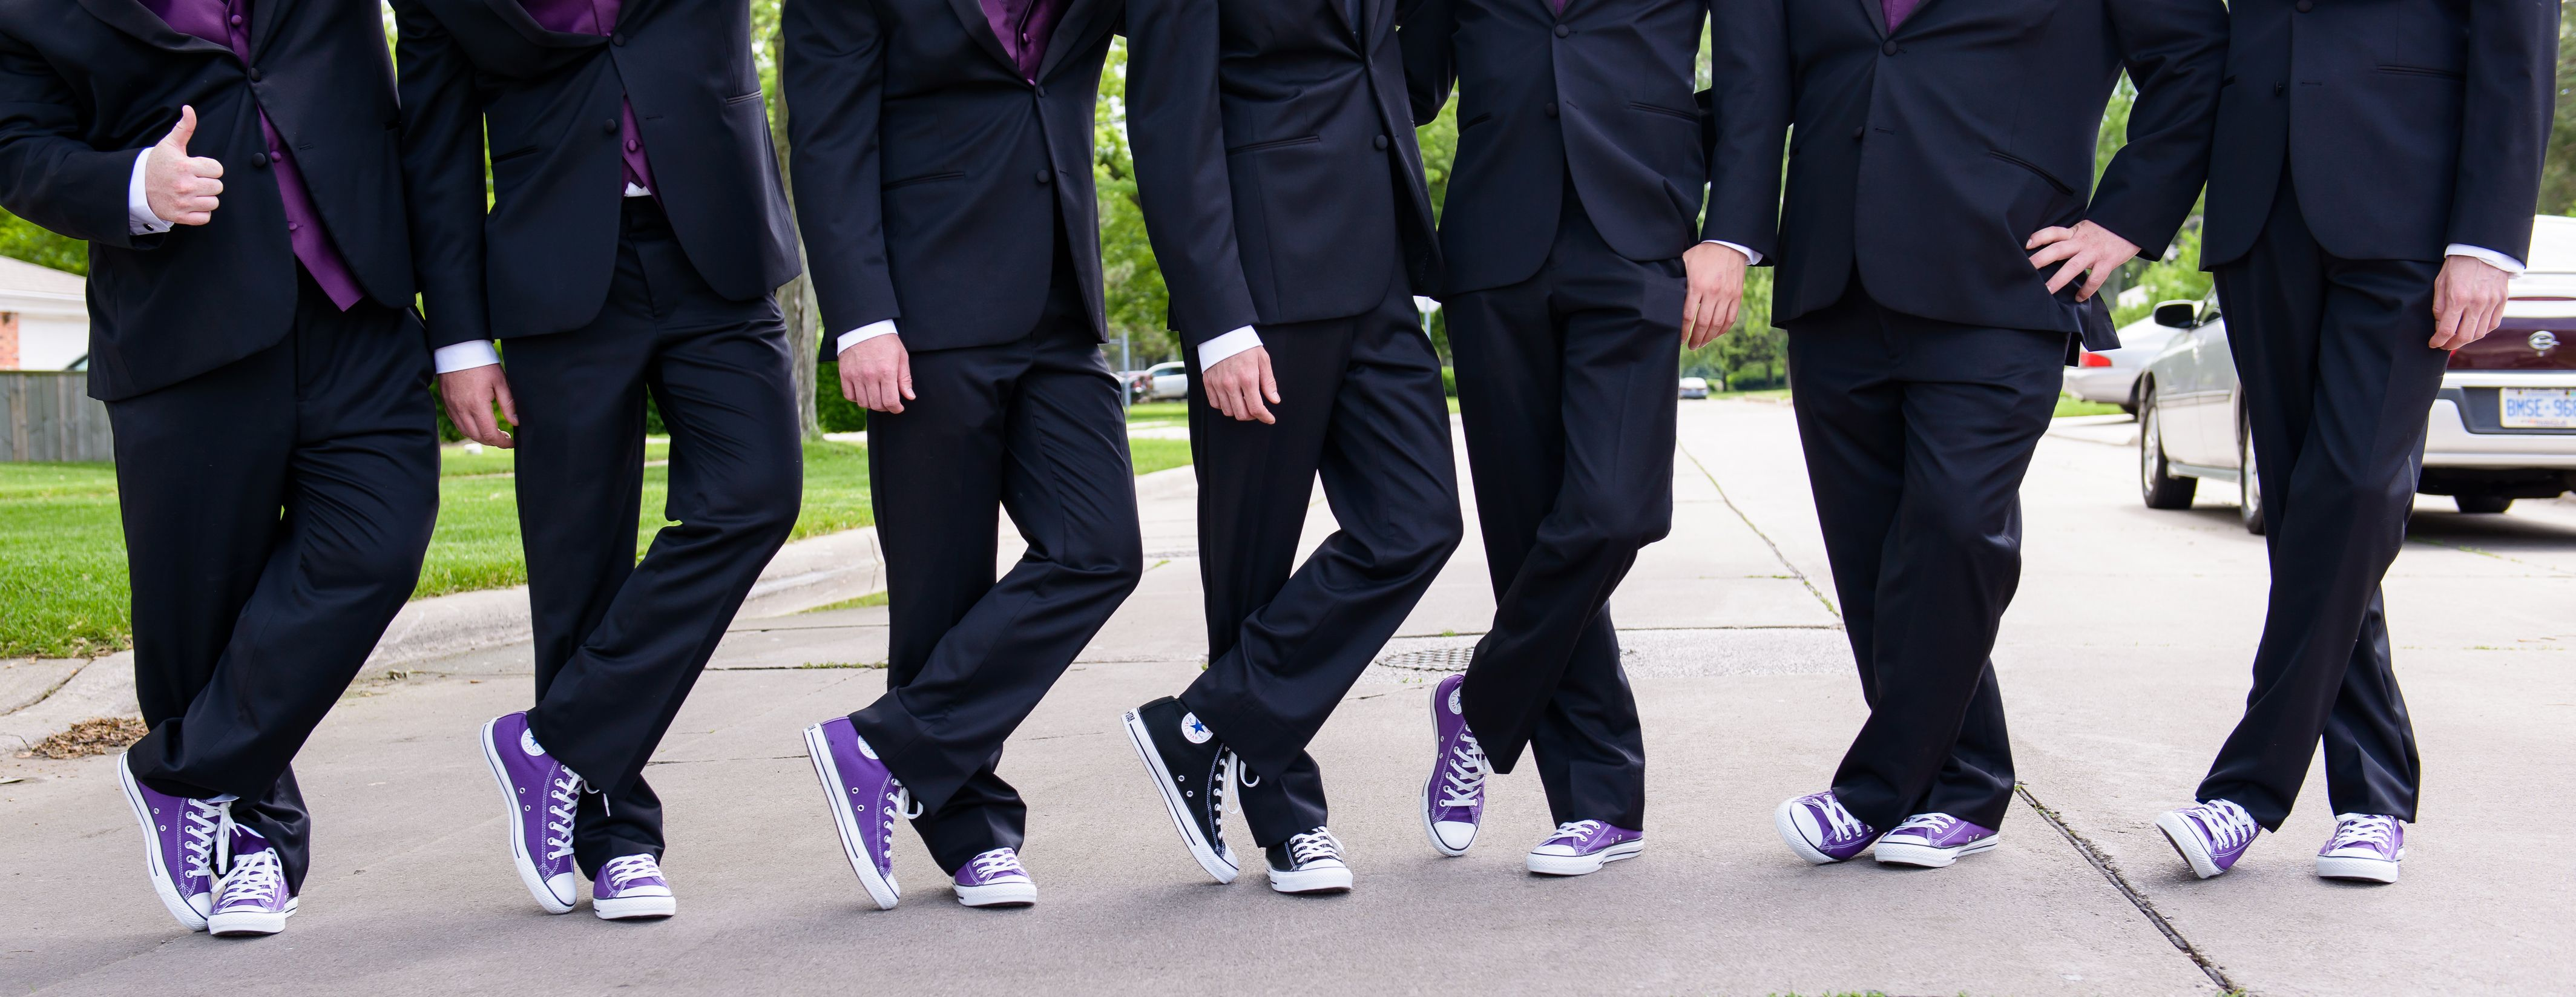 I wonder if I could convince Carlos to have the guys wear Converse ...